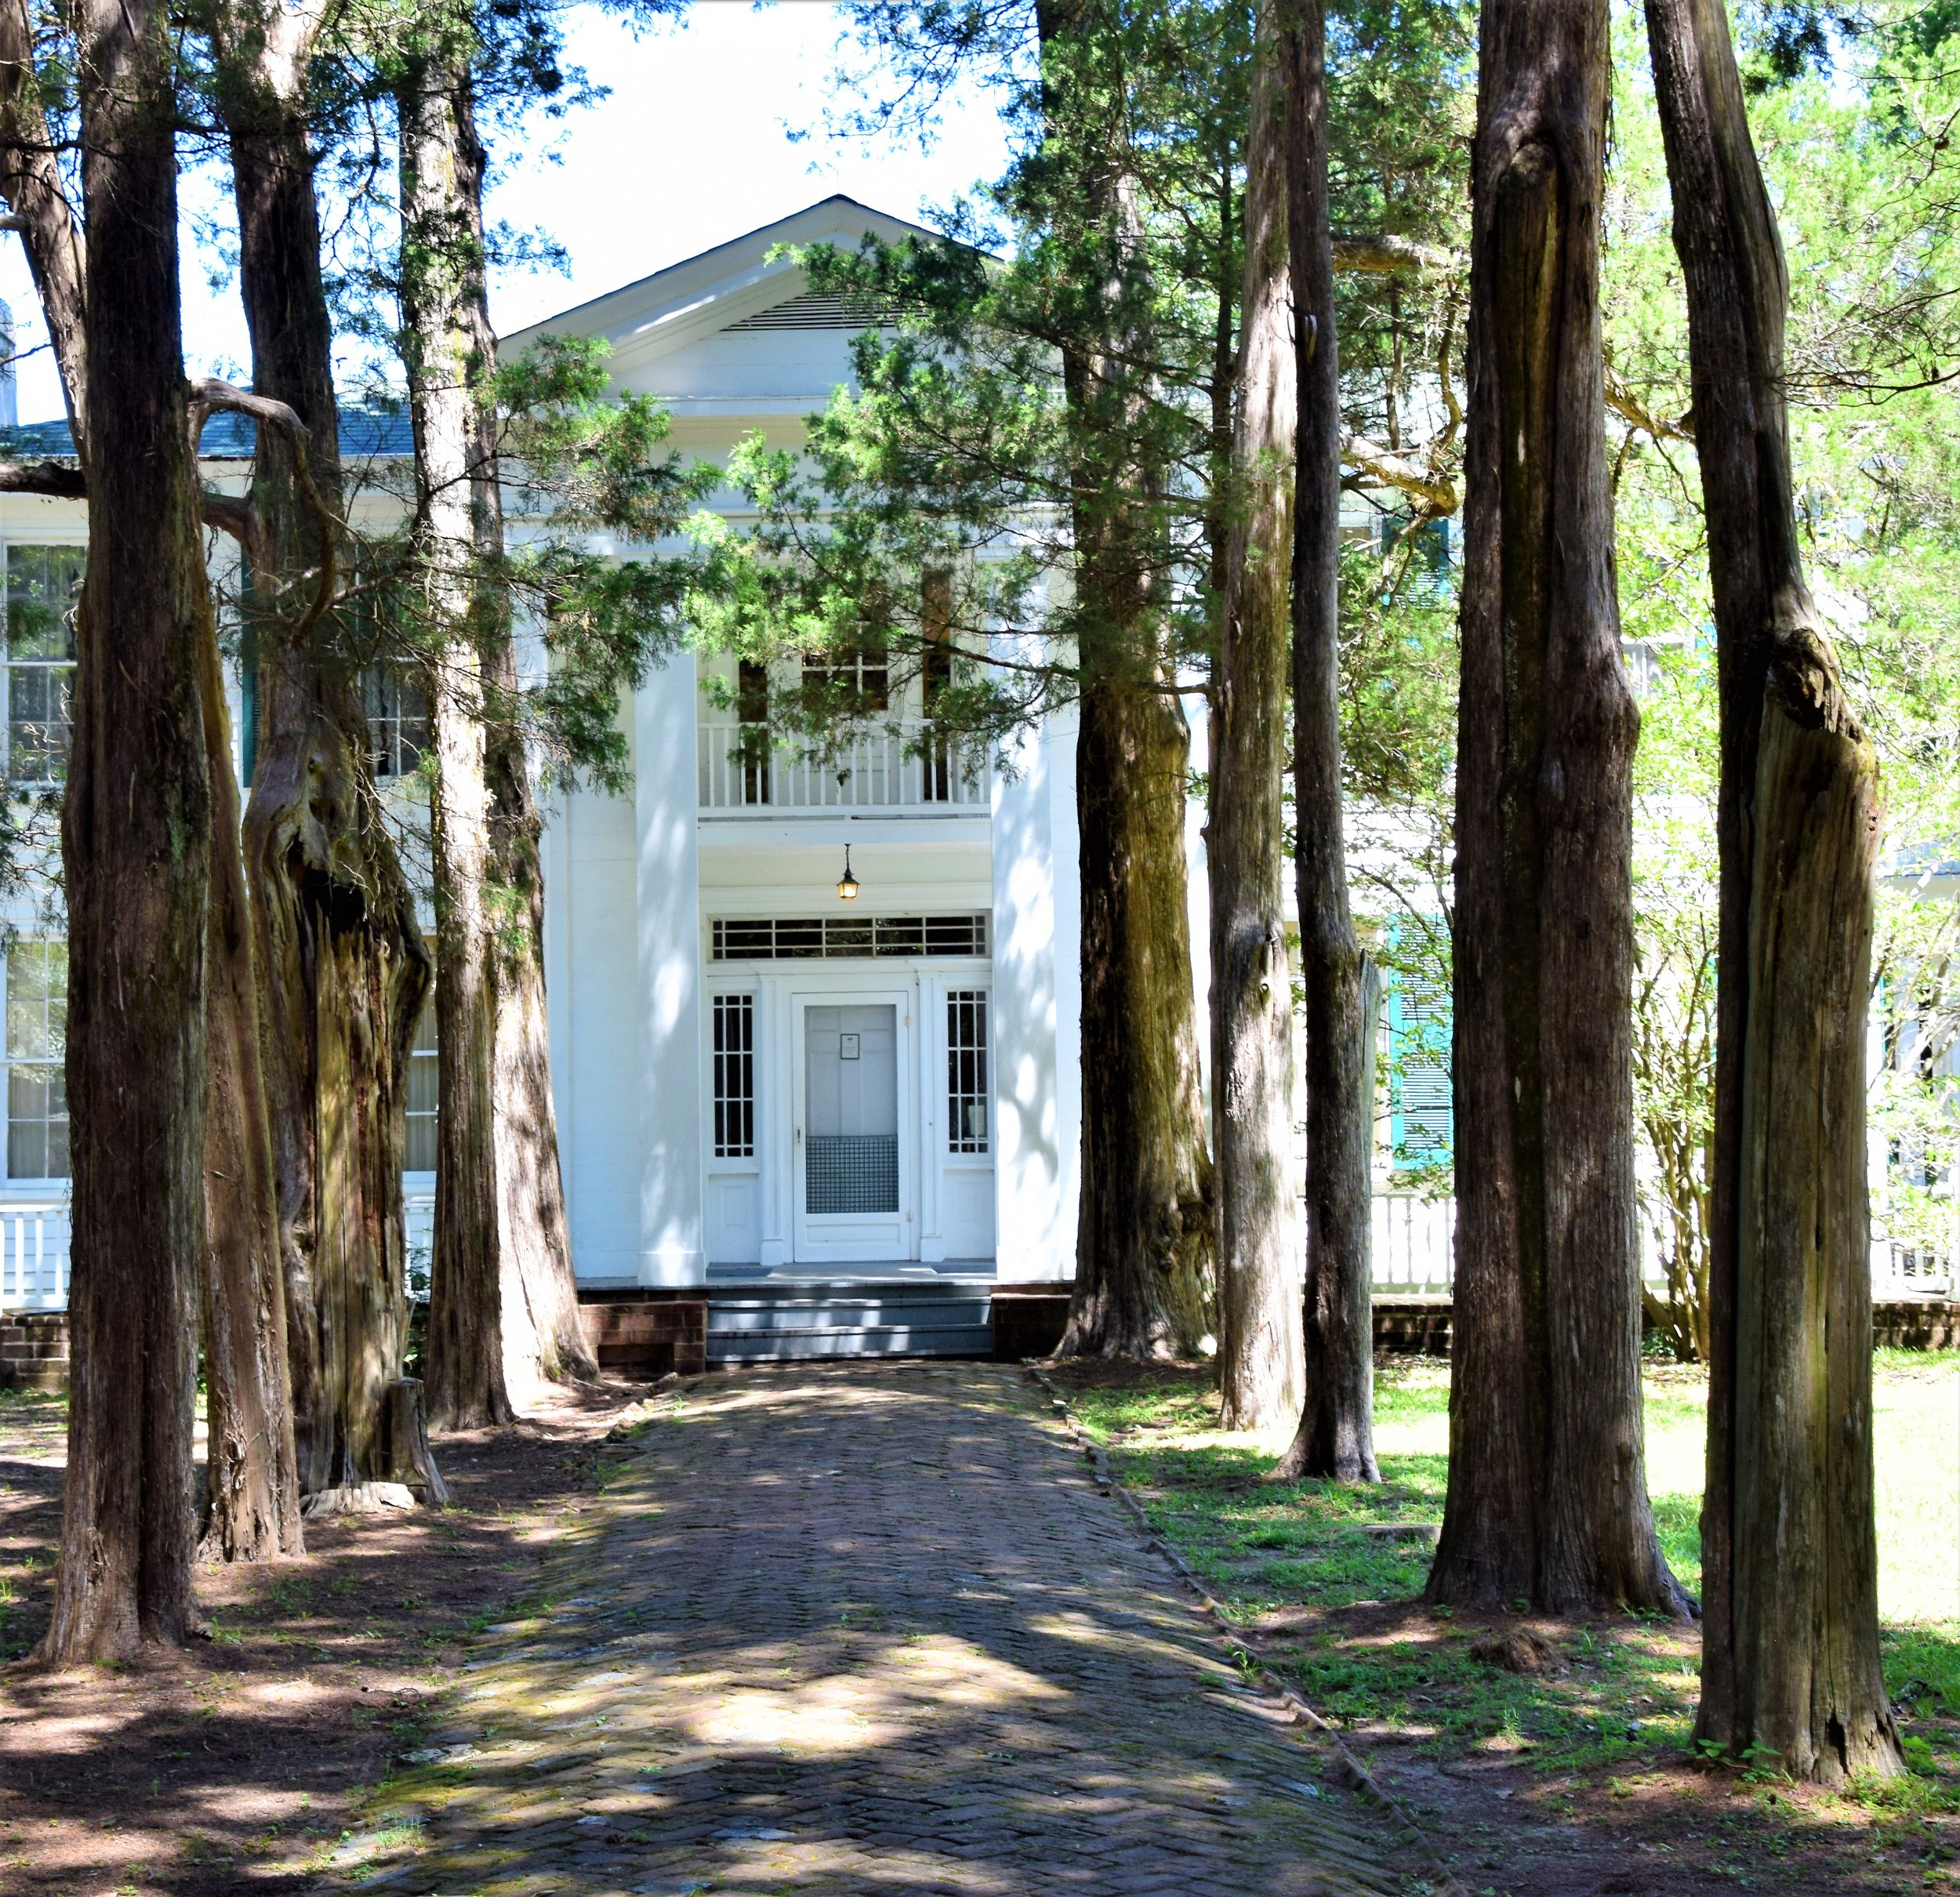 William Faulkner's home, Oxfrod, Mississippi